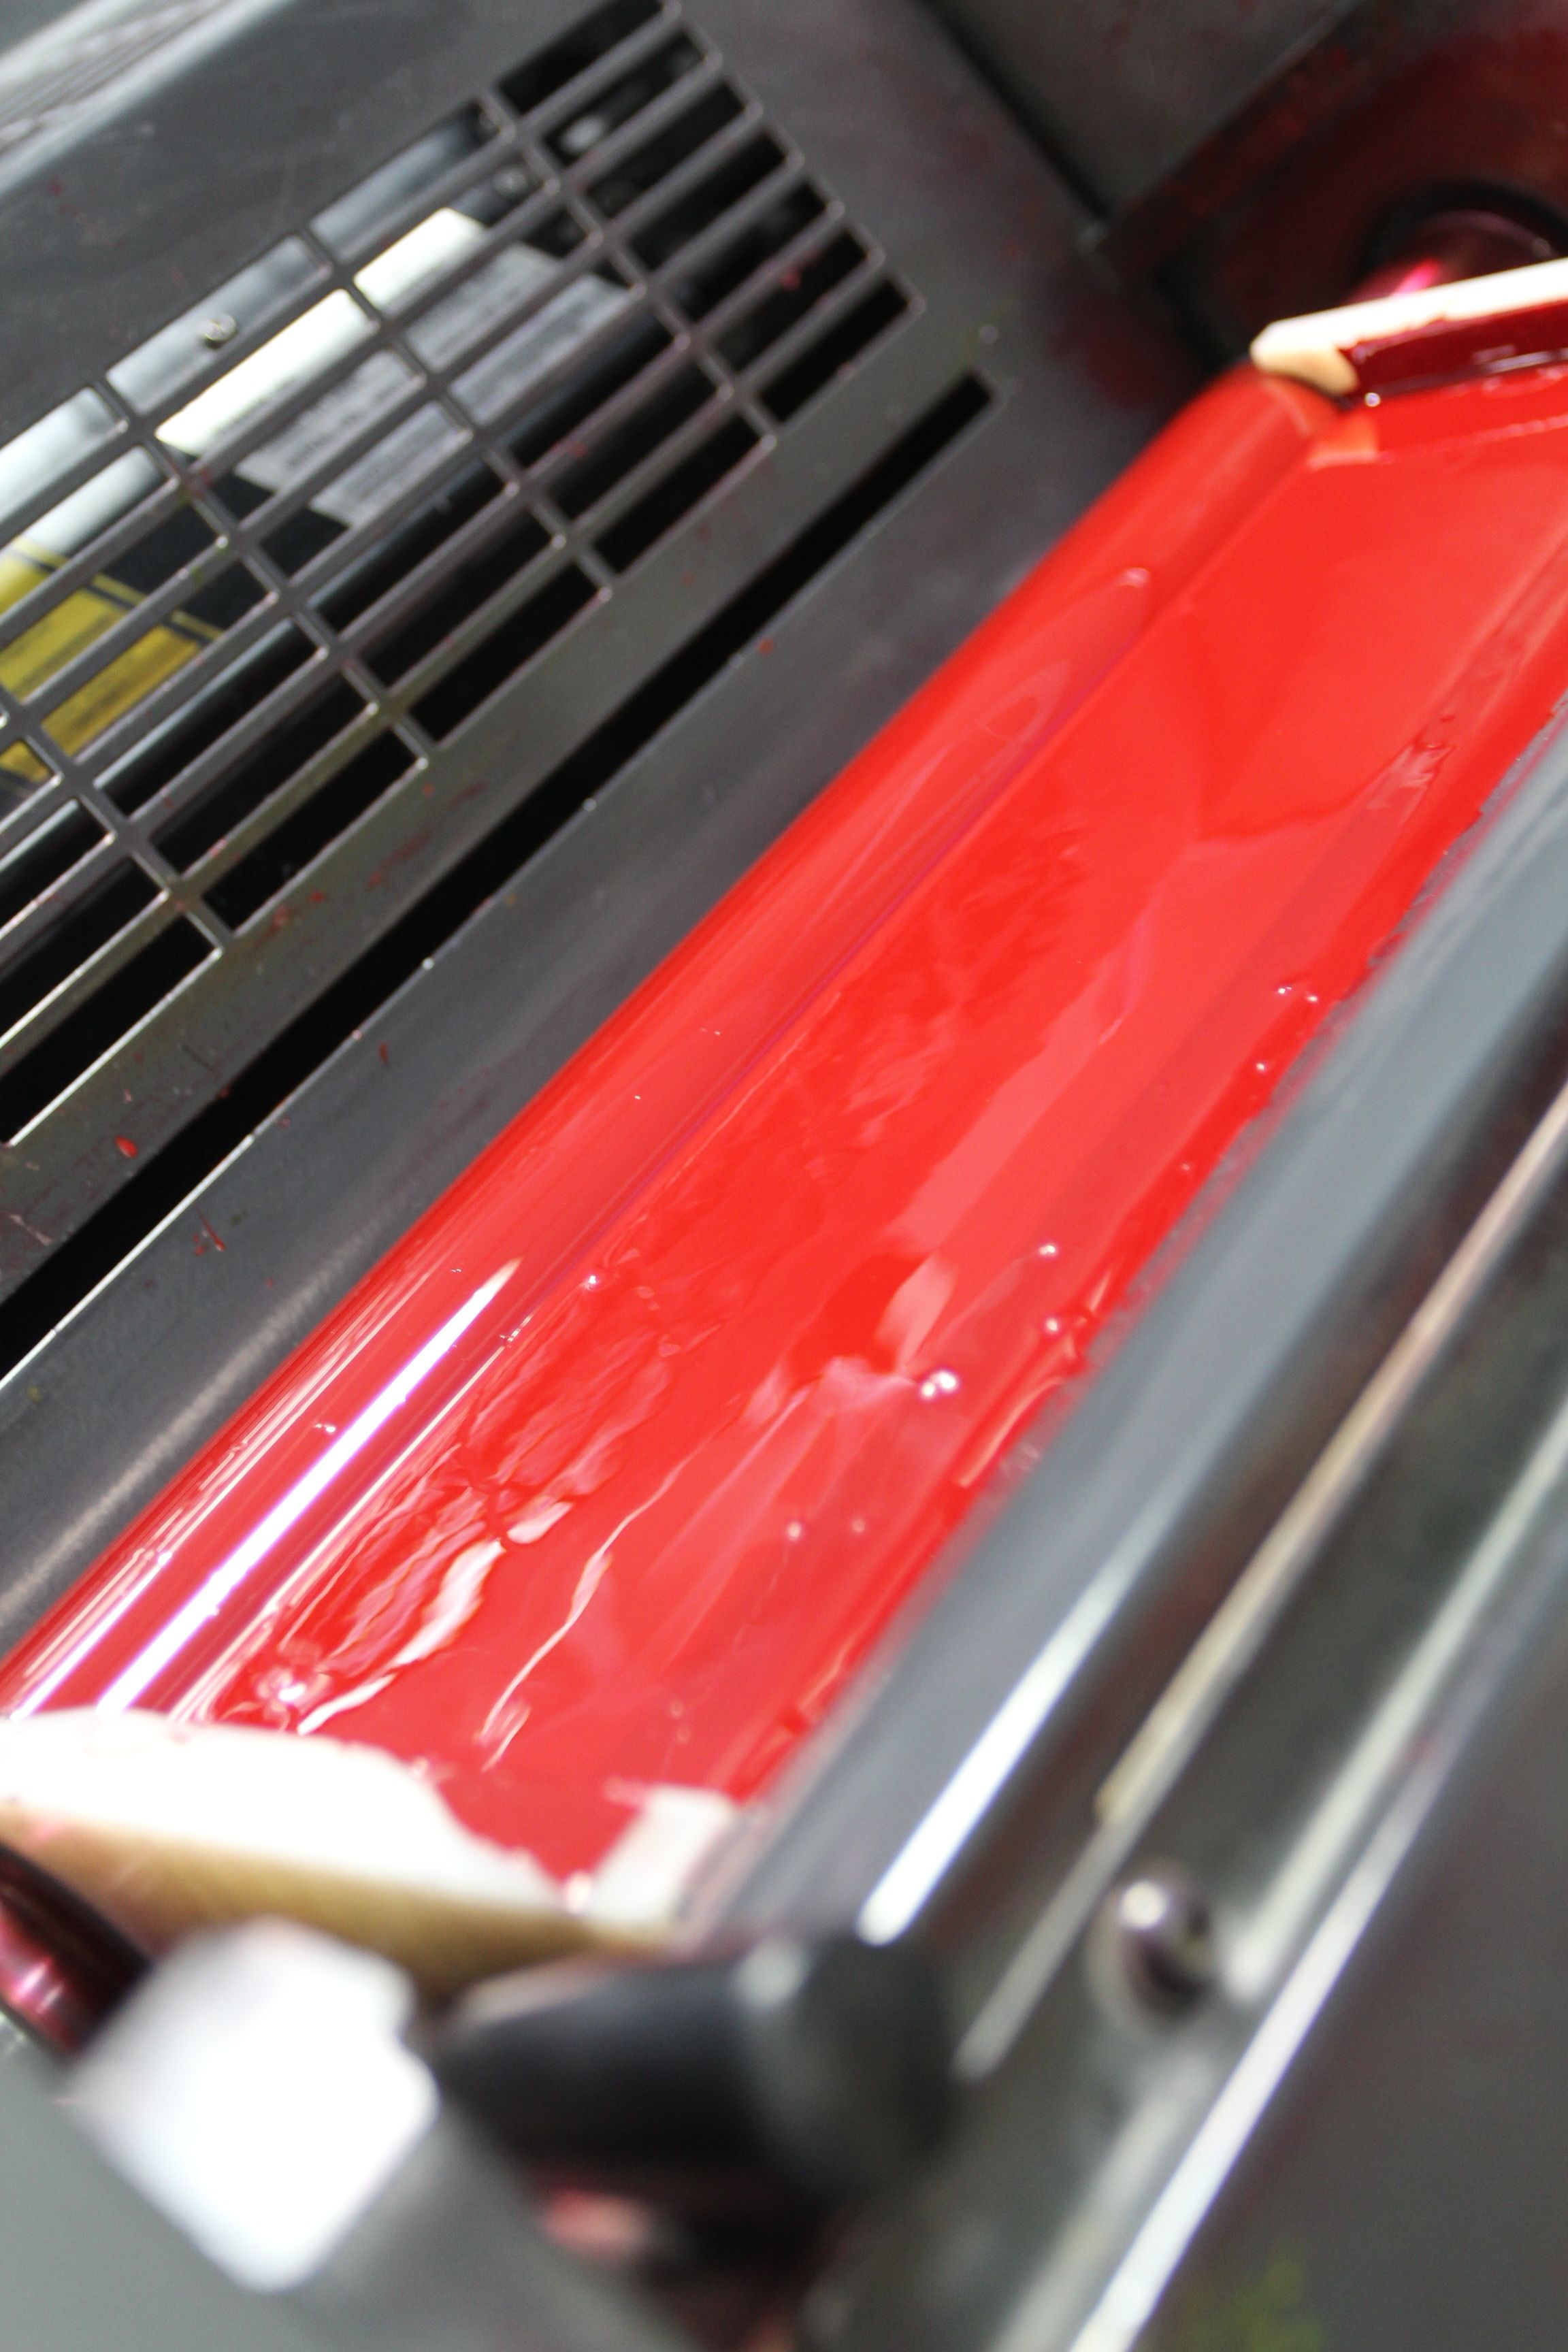 The magenta ink on our 4-color Heidelberg press.